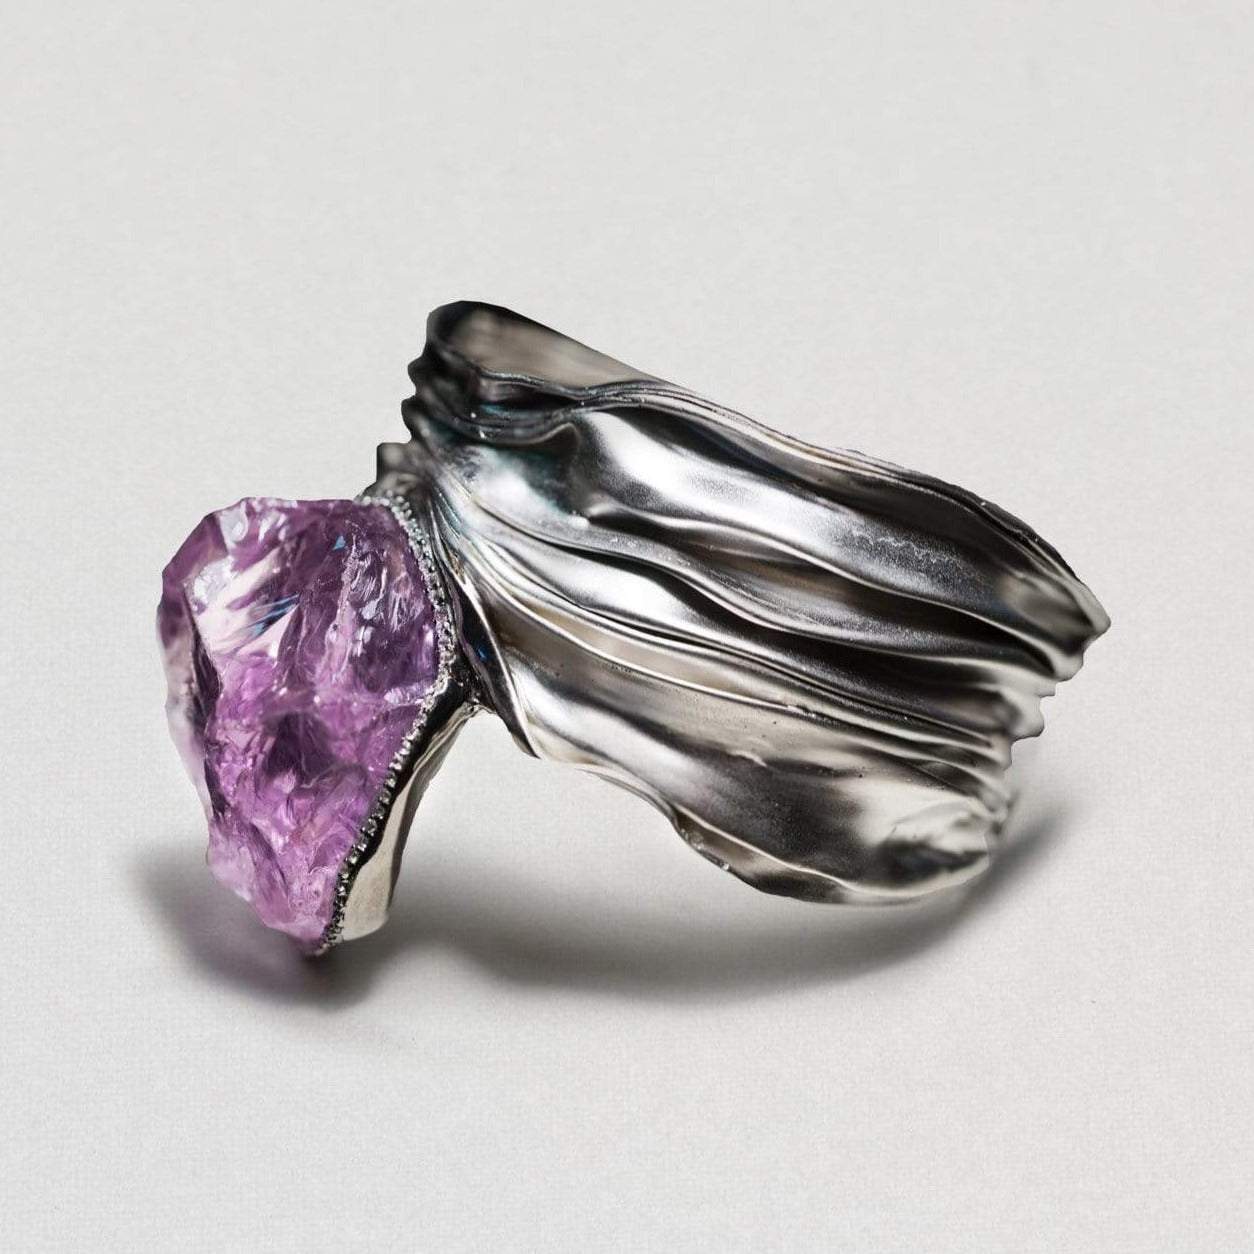 Aeris Bangle, Amethyst, Exclusive, Rhodium, silver, spo-disabled, StoneColor:purple, Type:LargeSoloStone Bangle